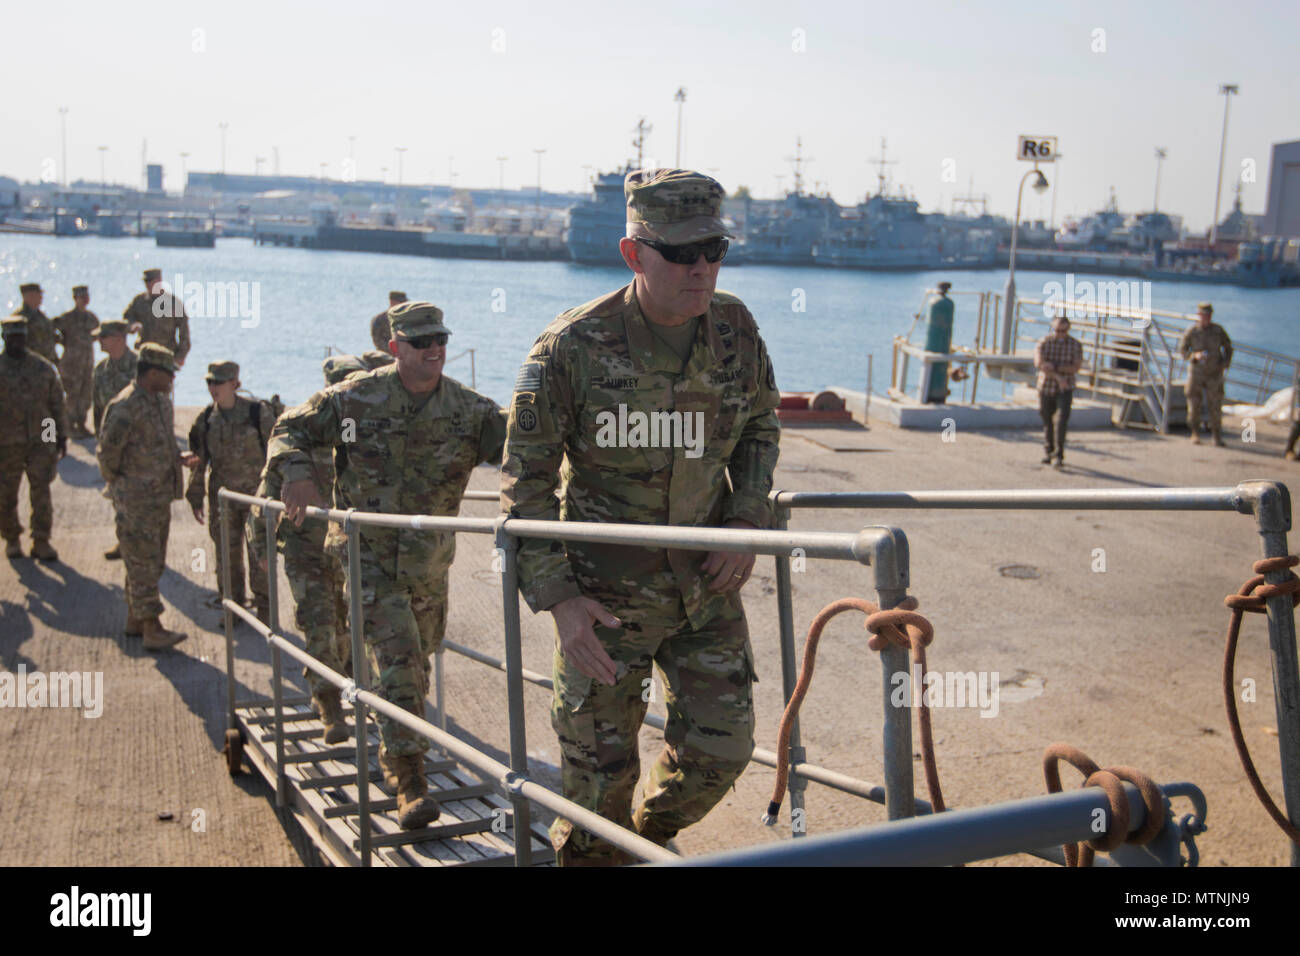 """U.S. Army Reserve Commanding General Lt. Gen. Charles D. Luckey steps aboard the LCU-2002 """"Kennesaw Mountain"""" during a tour of the Kuwait Naval Base and its capabilities in Kuwait, Jan. 10, 2017. (U.S. Army Photo by Staff Sgt. Dalton Smith) - Stock Image"""